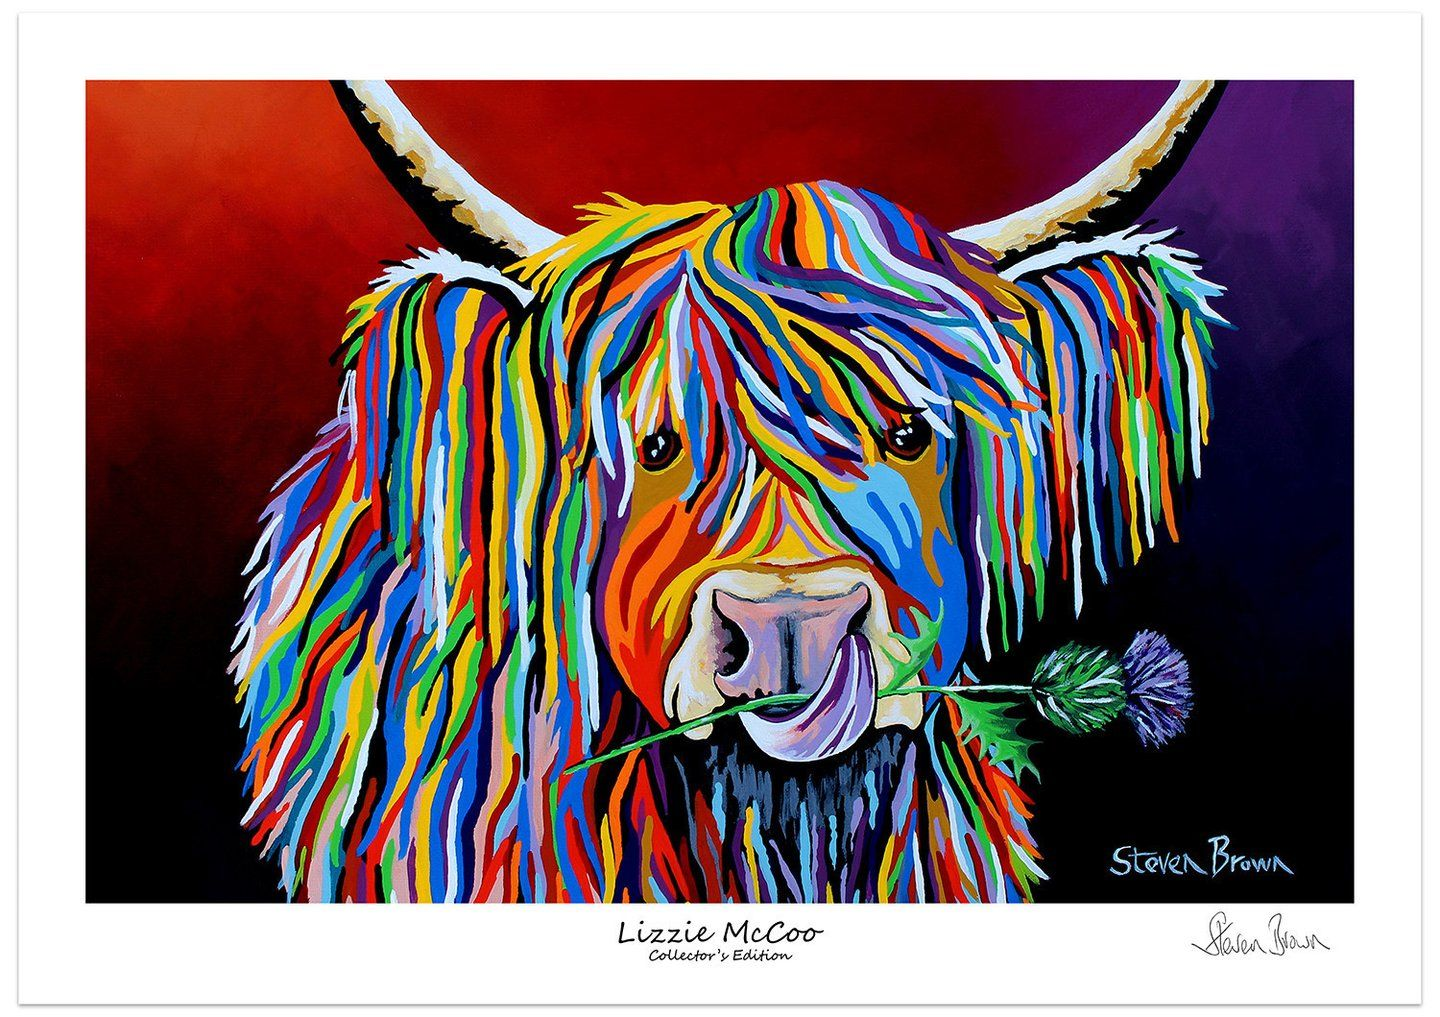 Lizzie mccoo collectorus edition print house fittings